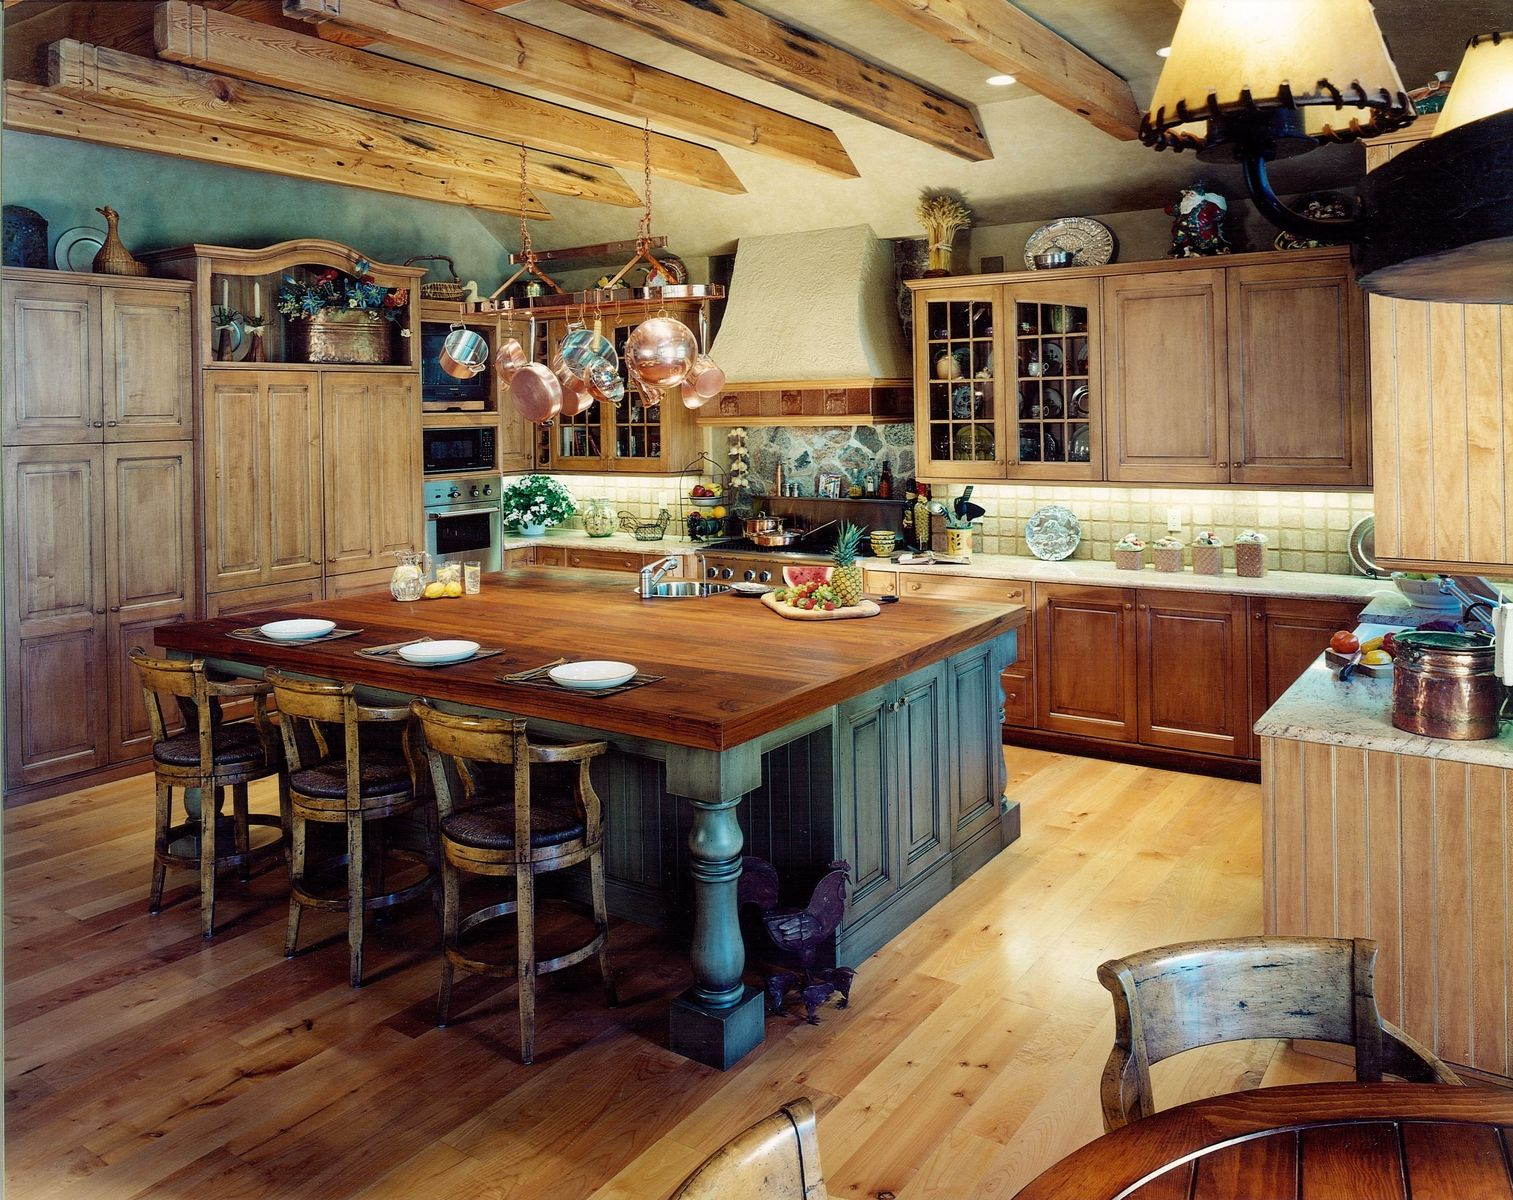 Custom Rustic Kitchen Cabinets Custom Rustic Mountain Kitchen & Diningcabinets & Design Iron